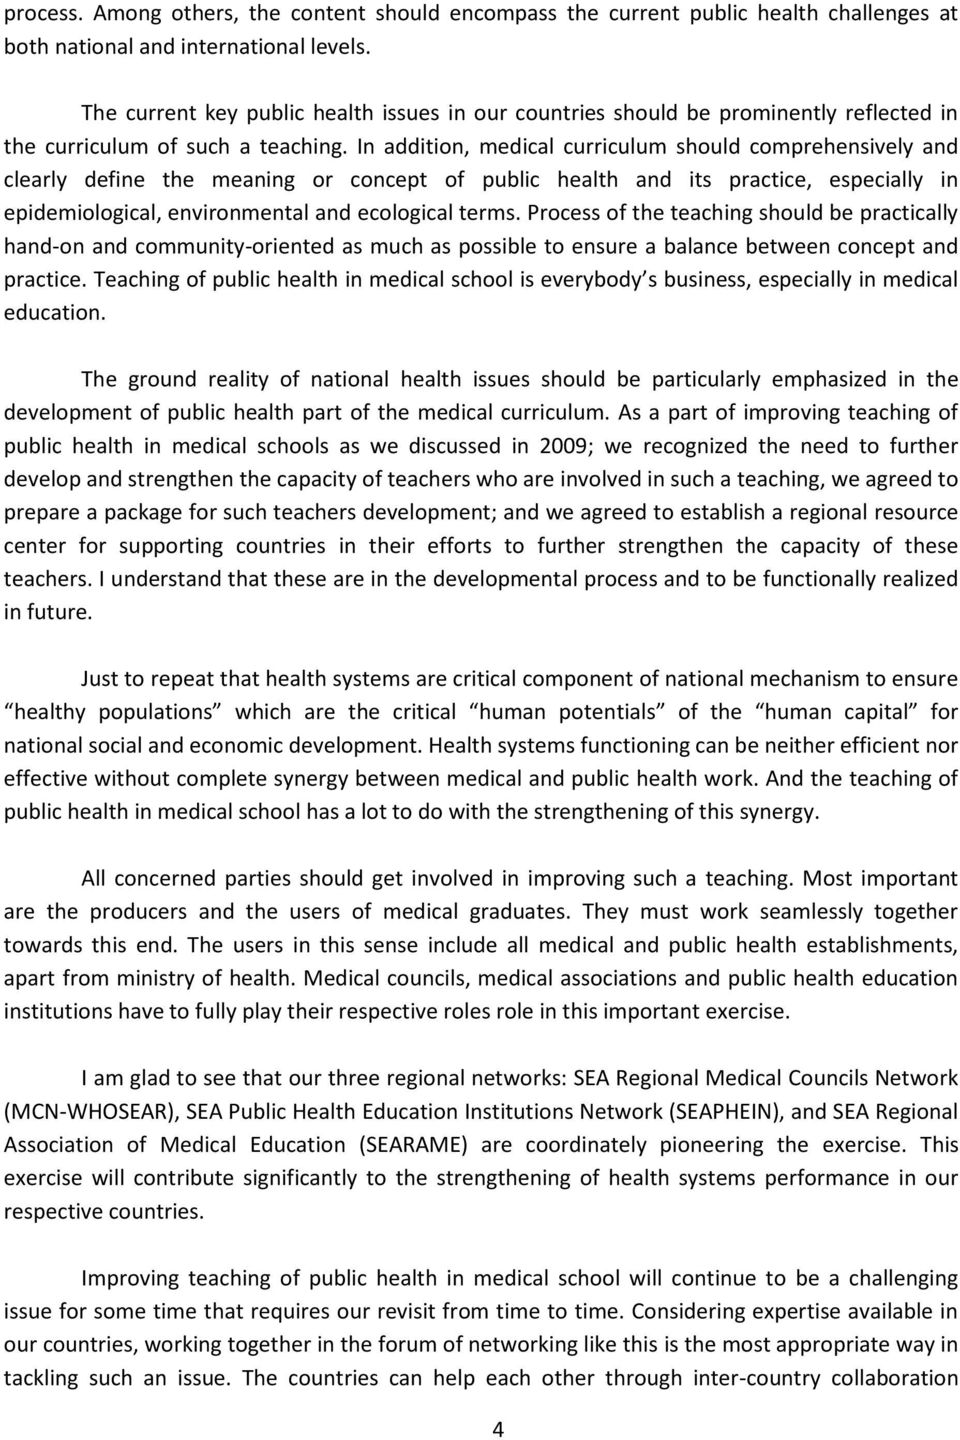 In addition, medical curriculum should comprehensively and clearly define the meaning or concept of public health and its practice, especially in epidemiological, environmental and ecological terms.